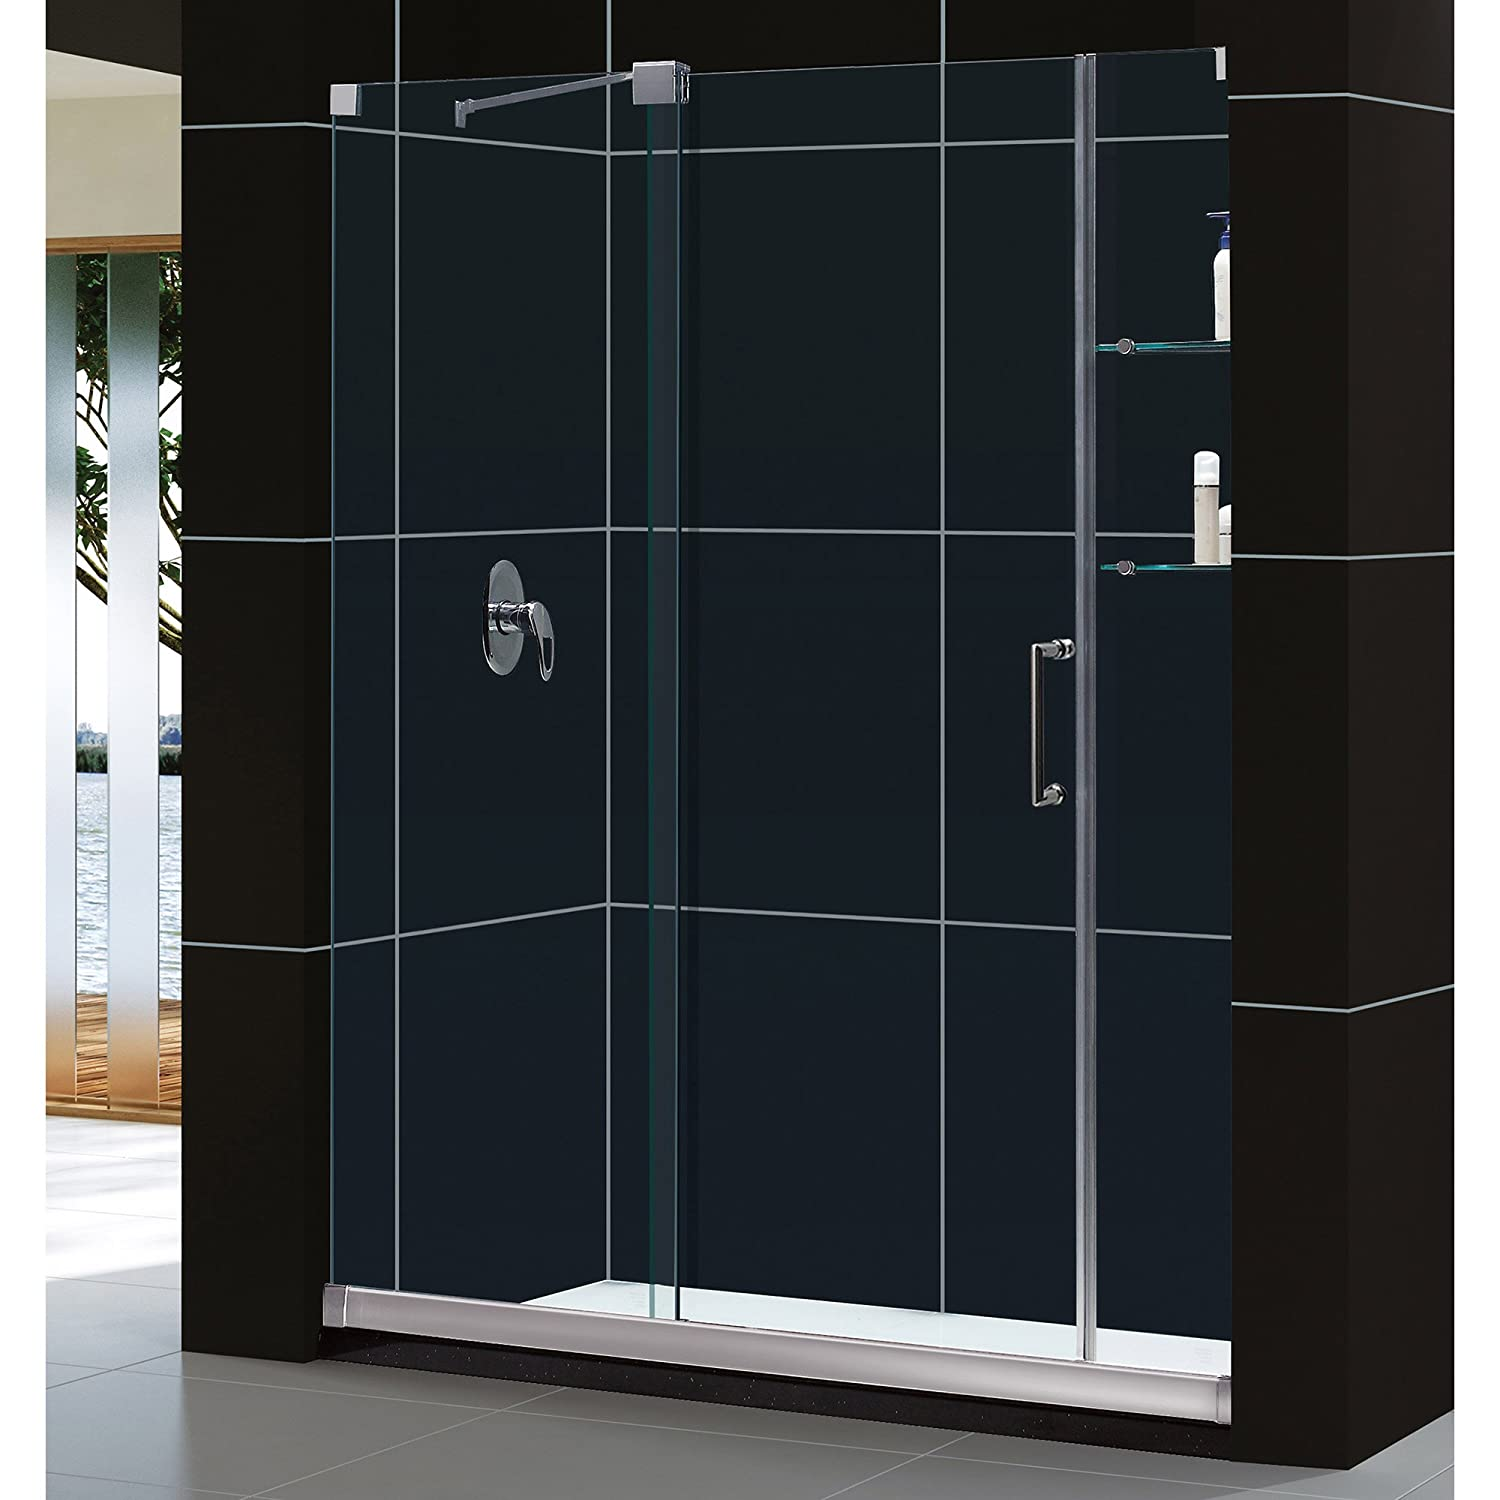 Dreamline Mirage 56 60 In Width Frameless Sliding Shower Door 38